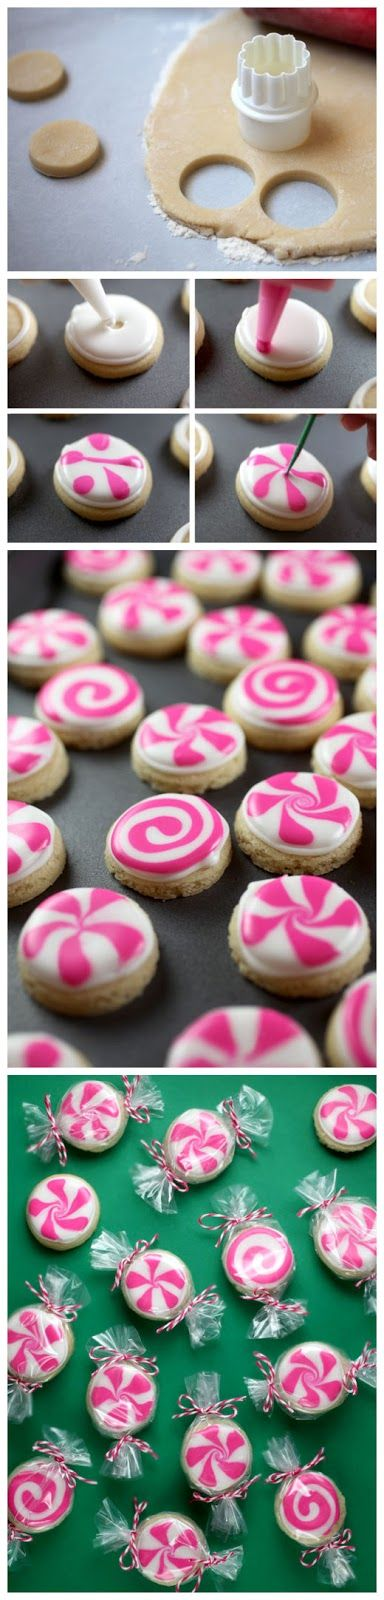 Peppermint Candy Sugar Cookies - I would use red and green instead of pink though!